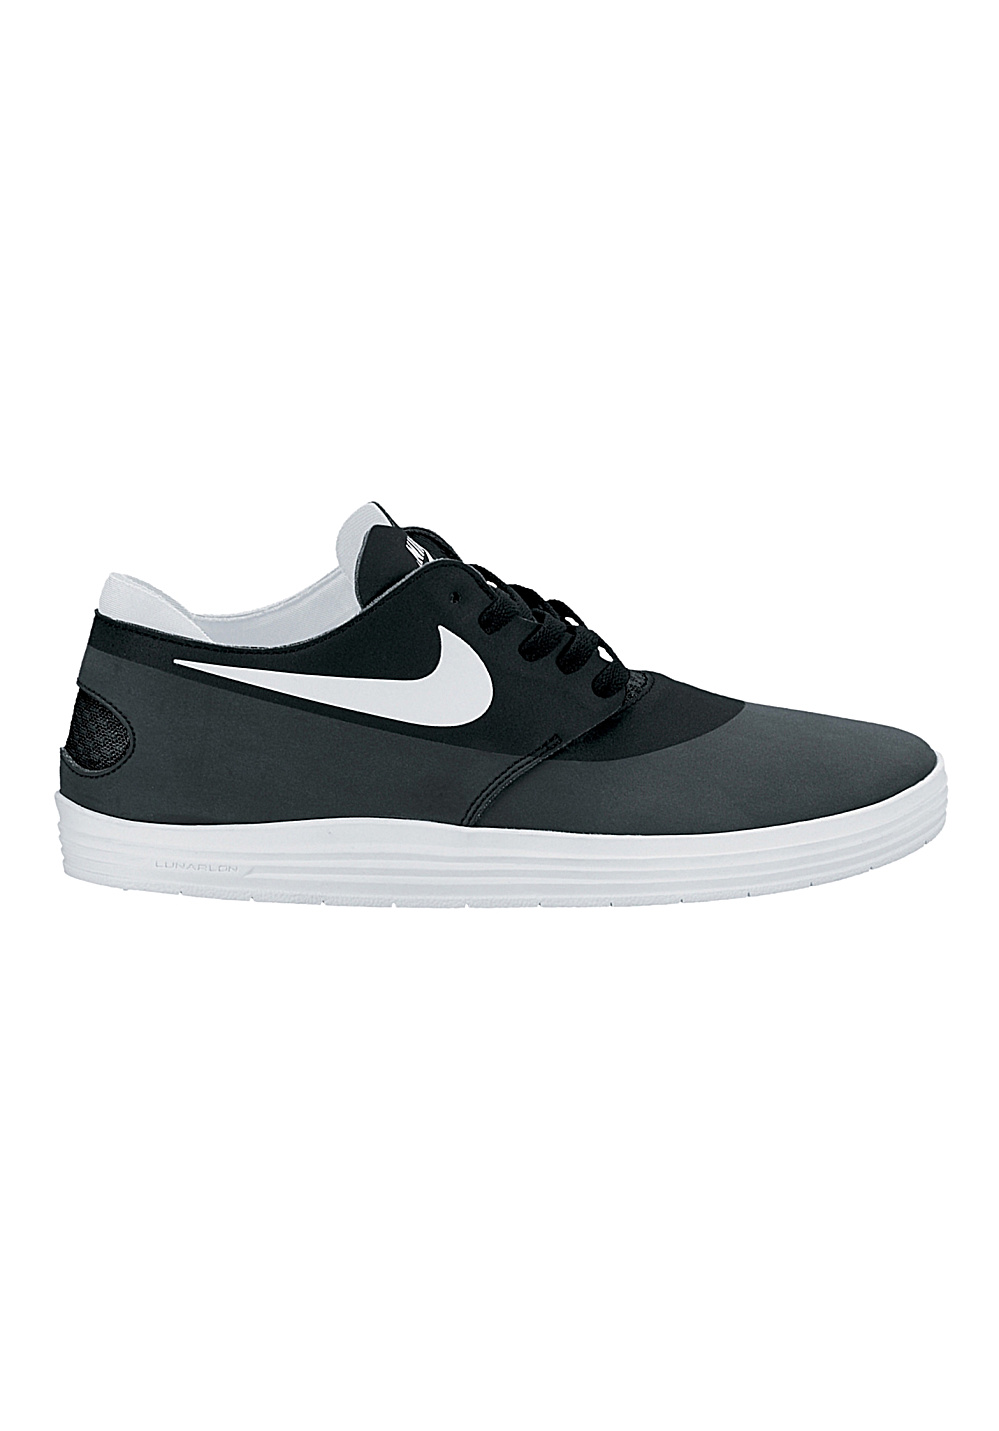 6c7542276285 Home · NIKE SB Lunar Oneshot - Sneakers for Men - Black. Back to Overview.  1  2. Previous